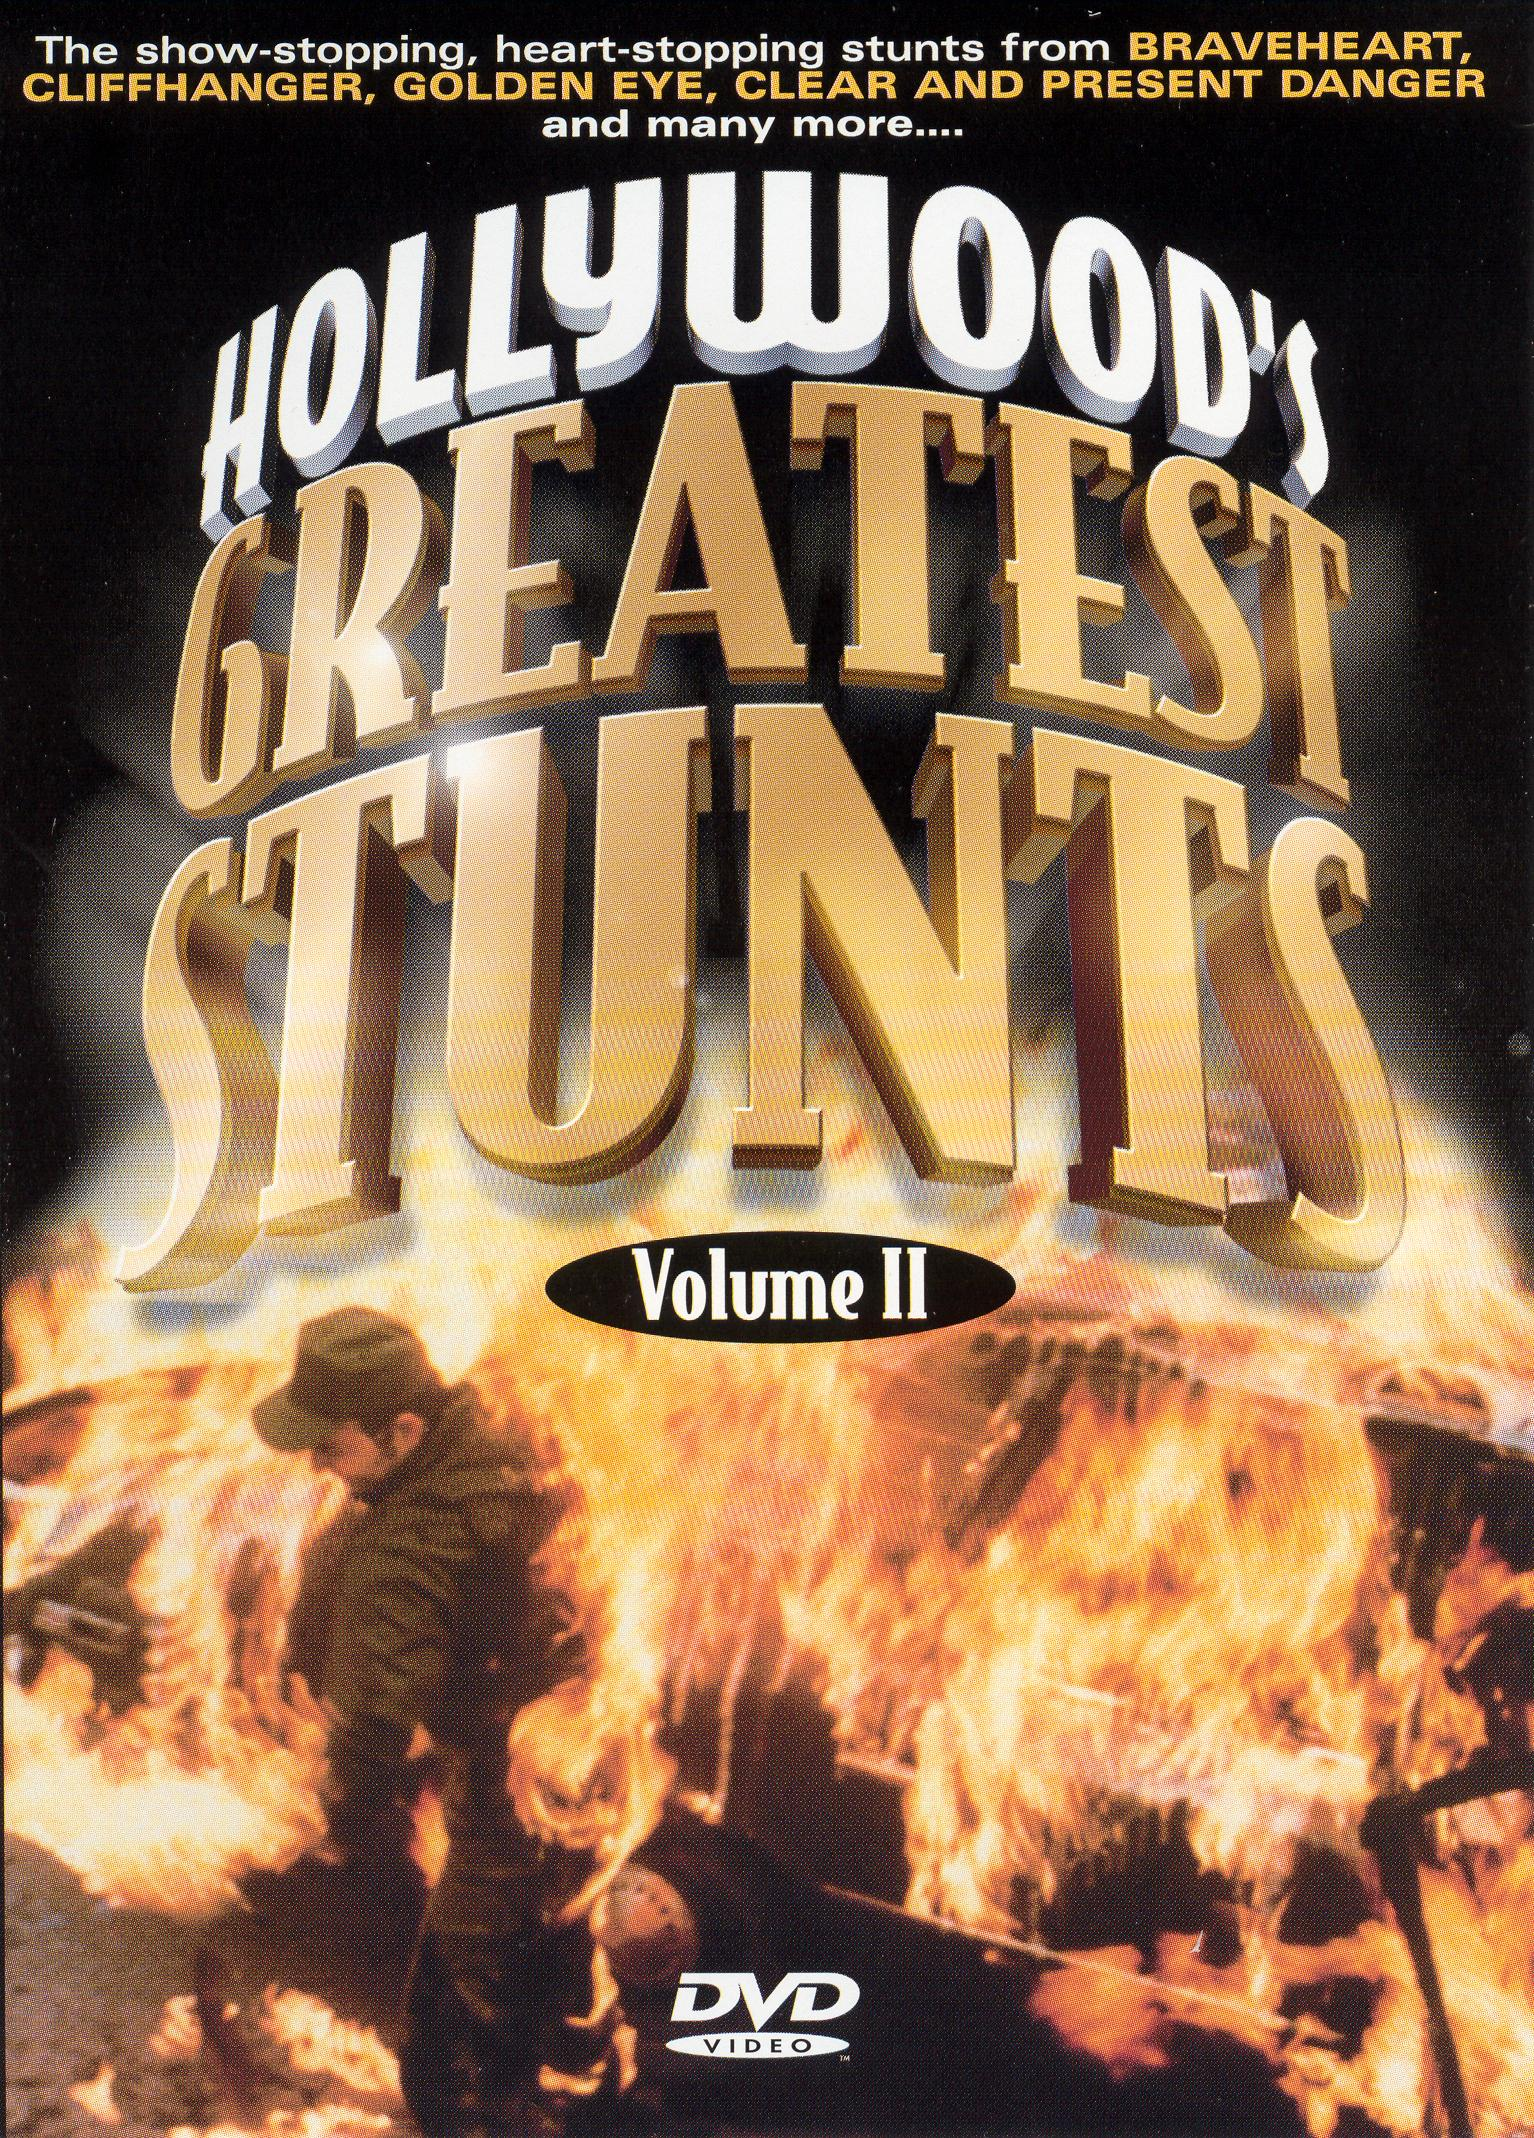 Hollywood's Greatest Stunts, Vol. 2